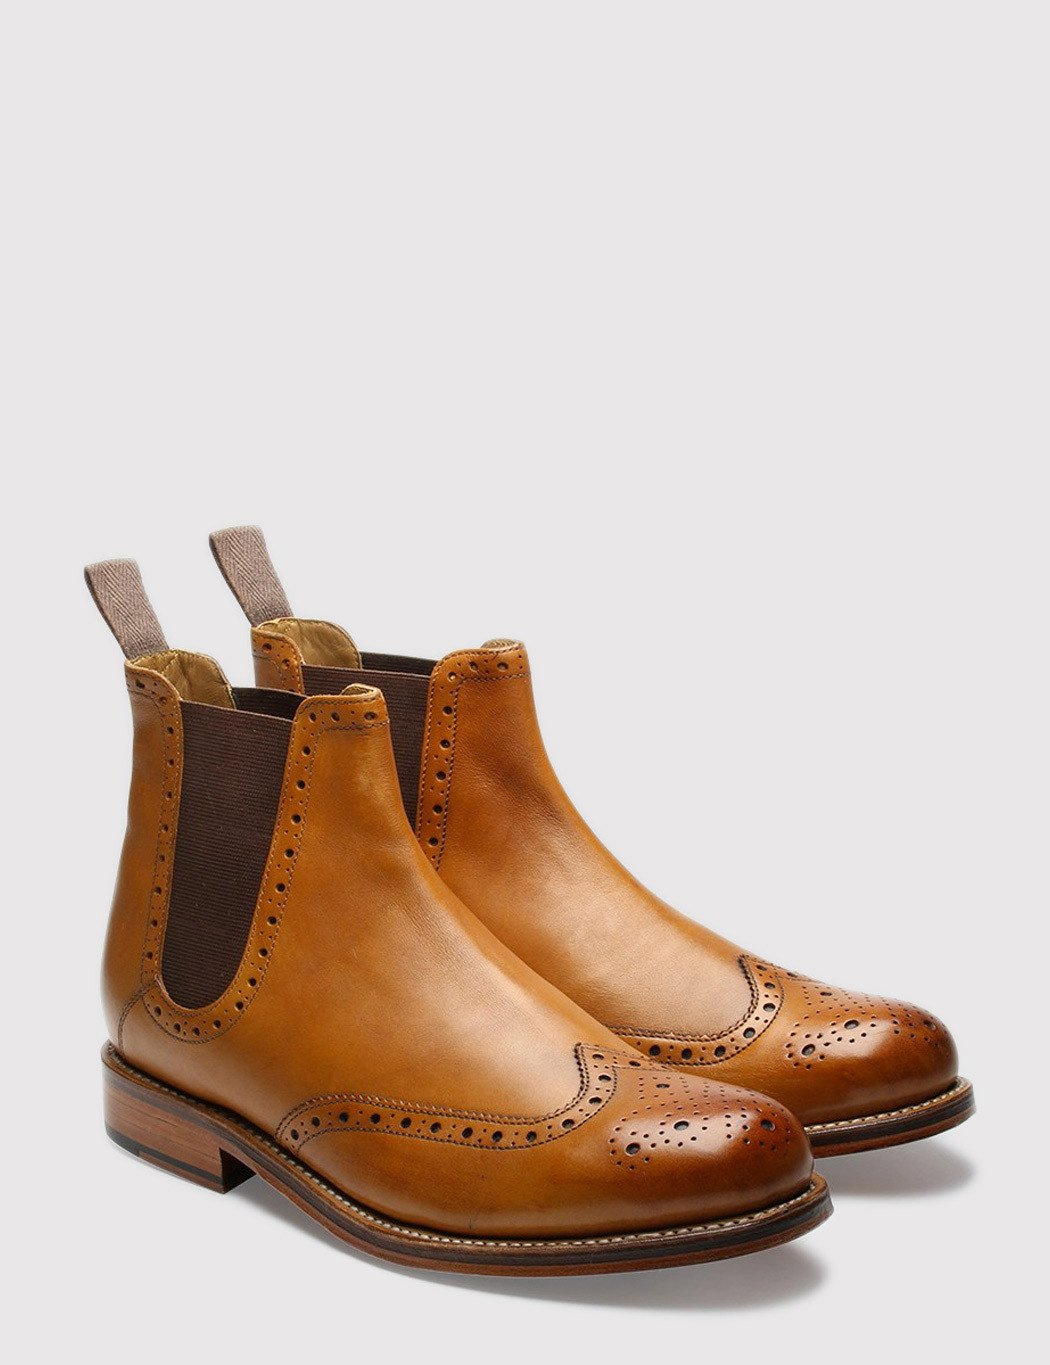 Grenson Jacob Calf Chelsea Boots - Tan